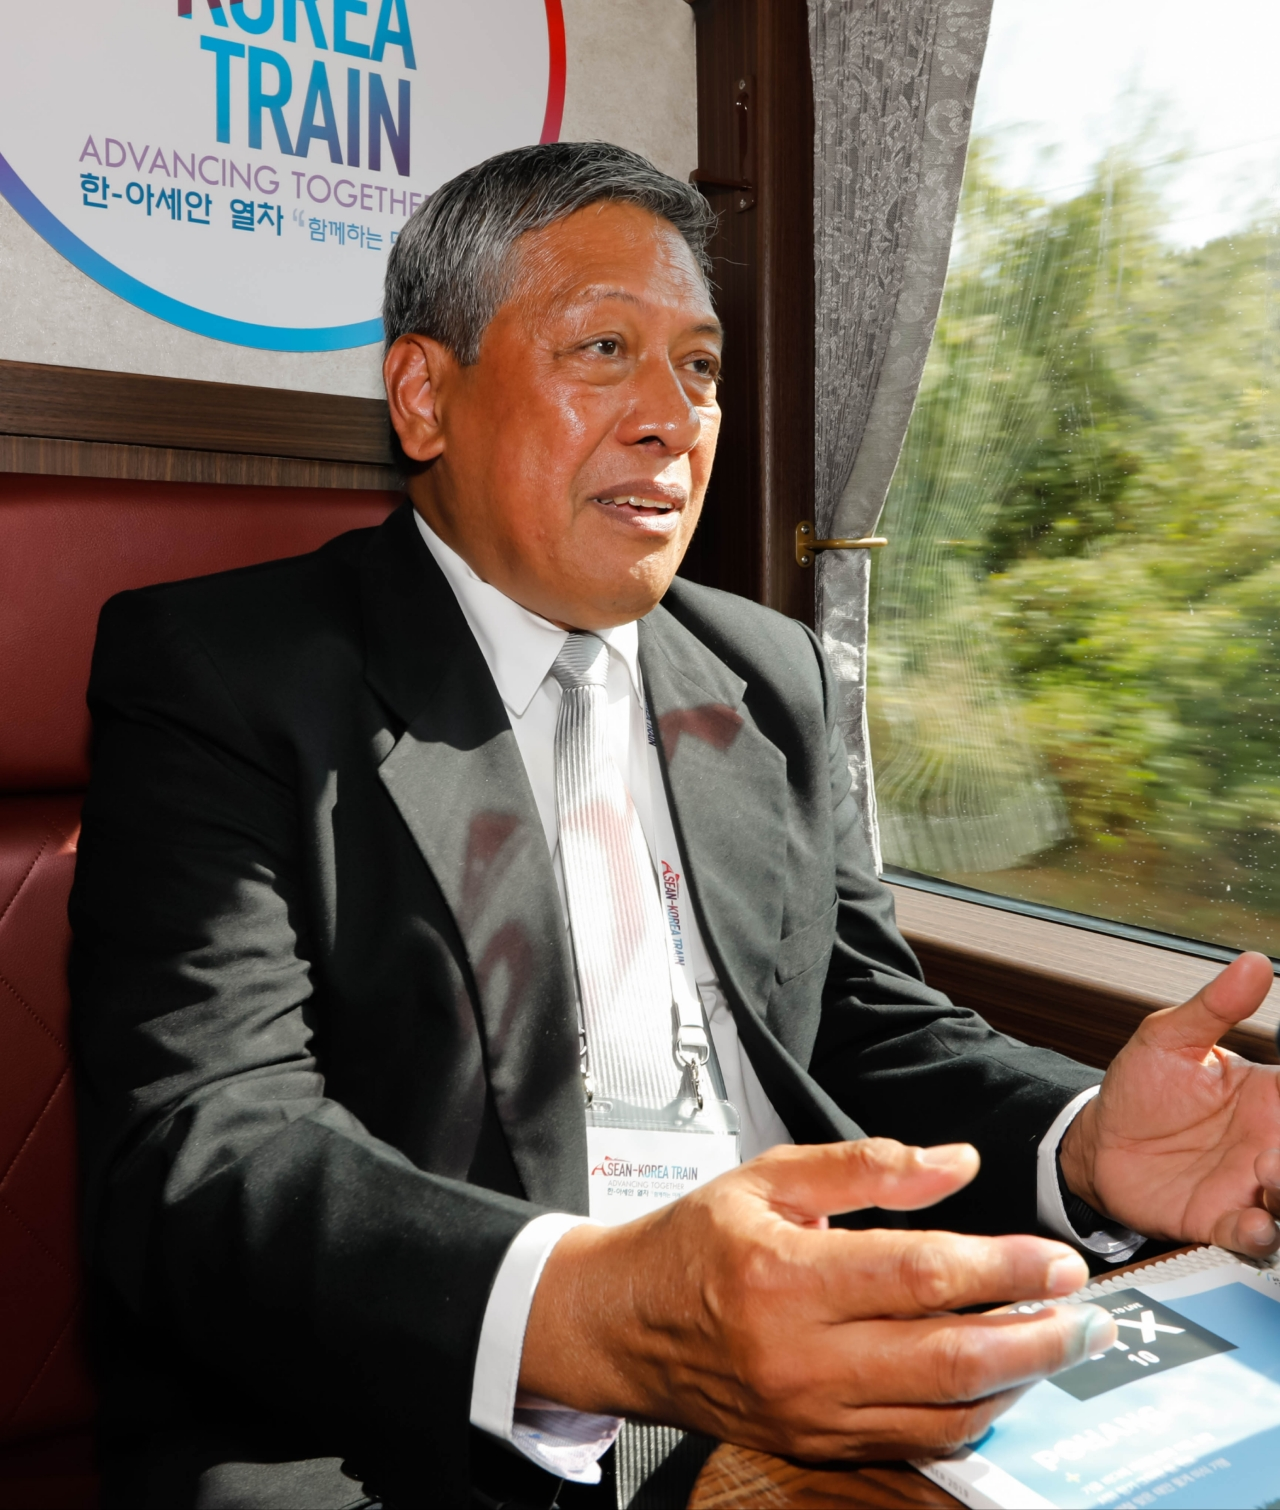 "Philippine Board of Investments Gov. Napoleon Concepcion speaks to The Korea Herald during an interview on the train to Gyeongju on the first day of the three-day voyage ""ASEAN-Korea Train: Advancing Together,"" Oct. 16. (ASEAN-Korea Center)"